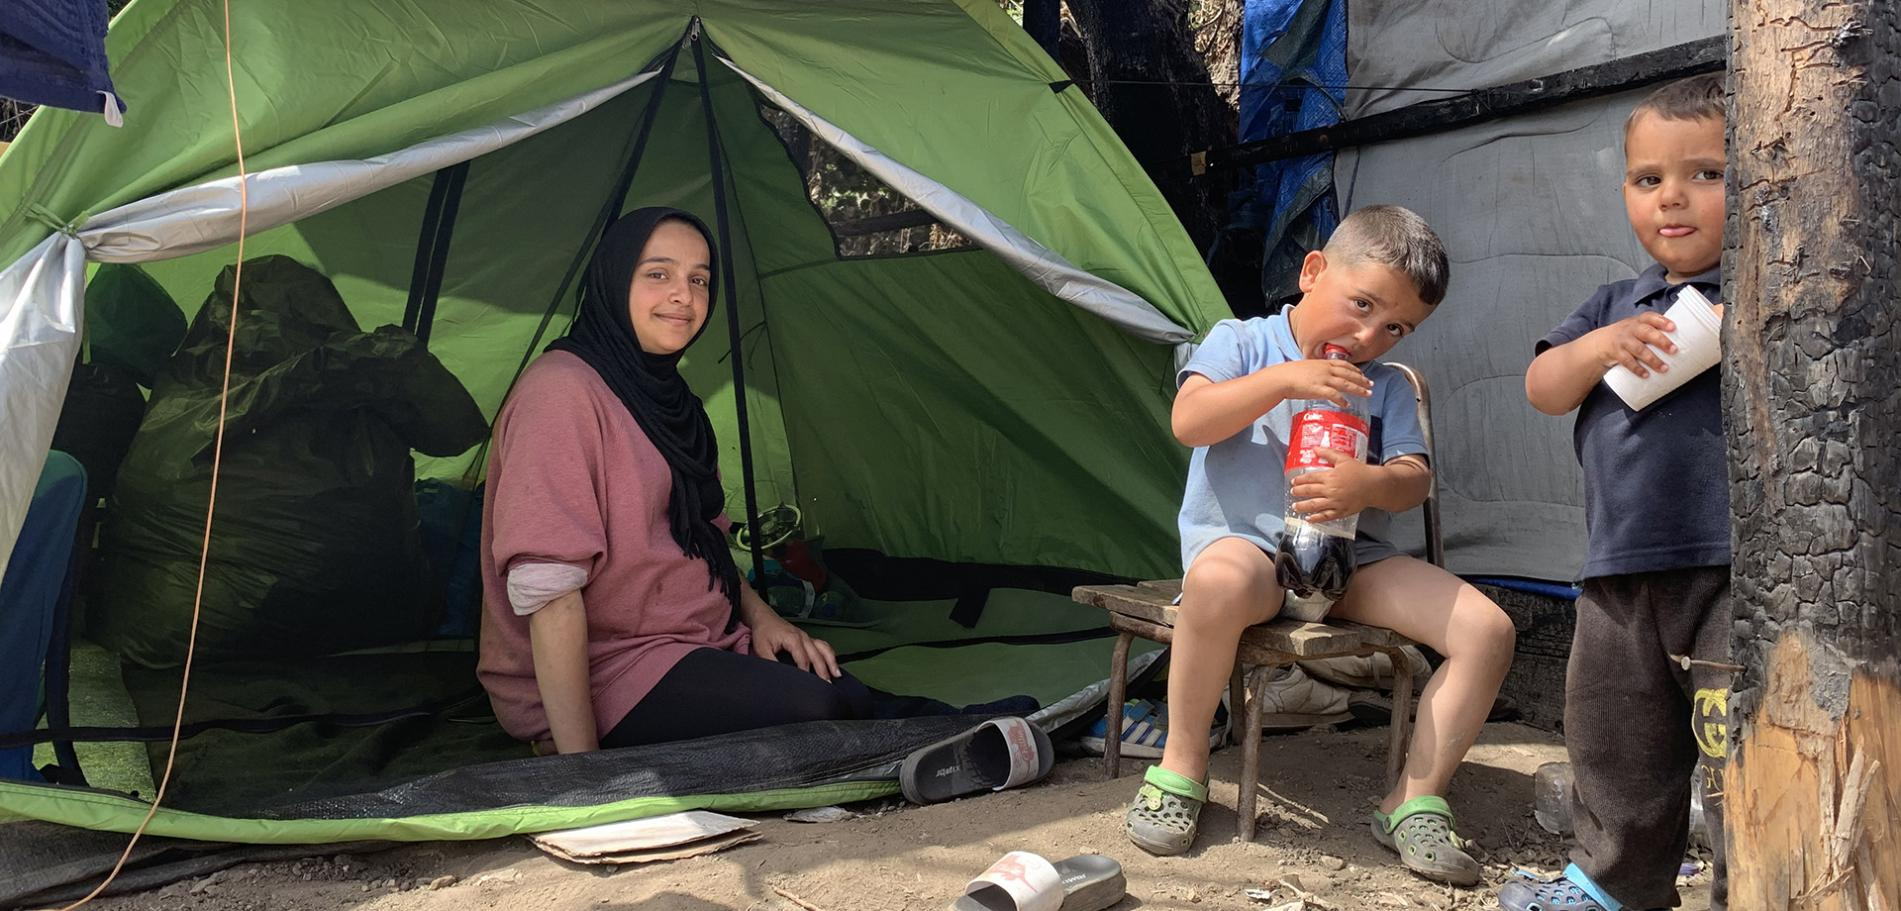 Shaza with her two sons in the summer tent where the family sleeps in Vathy camp, Samos